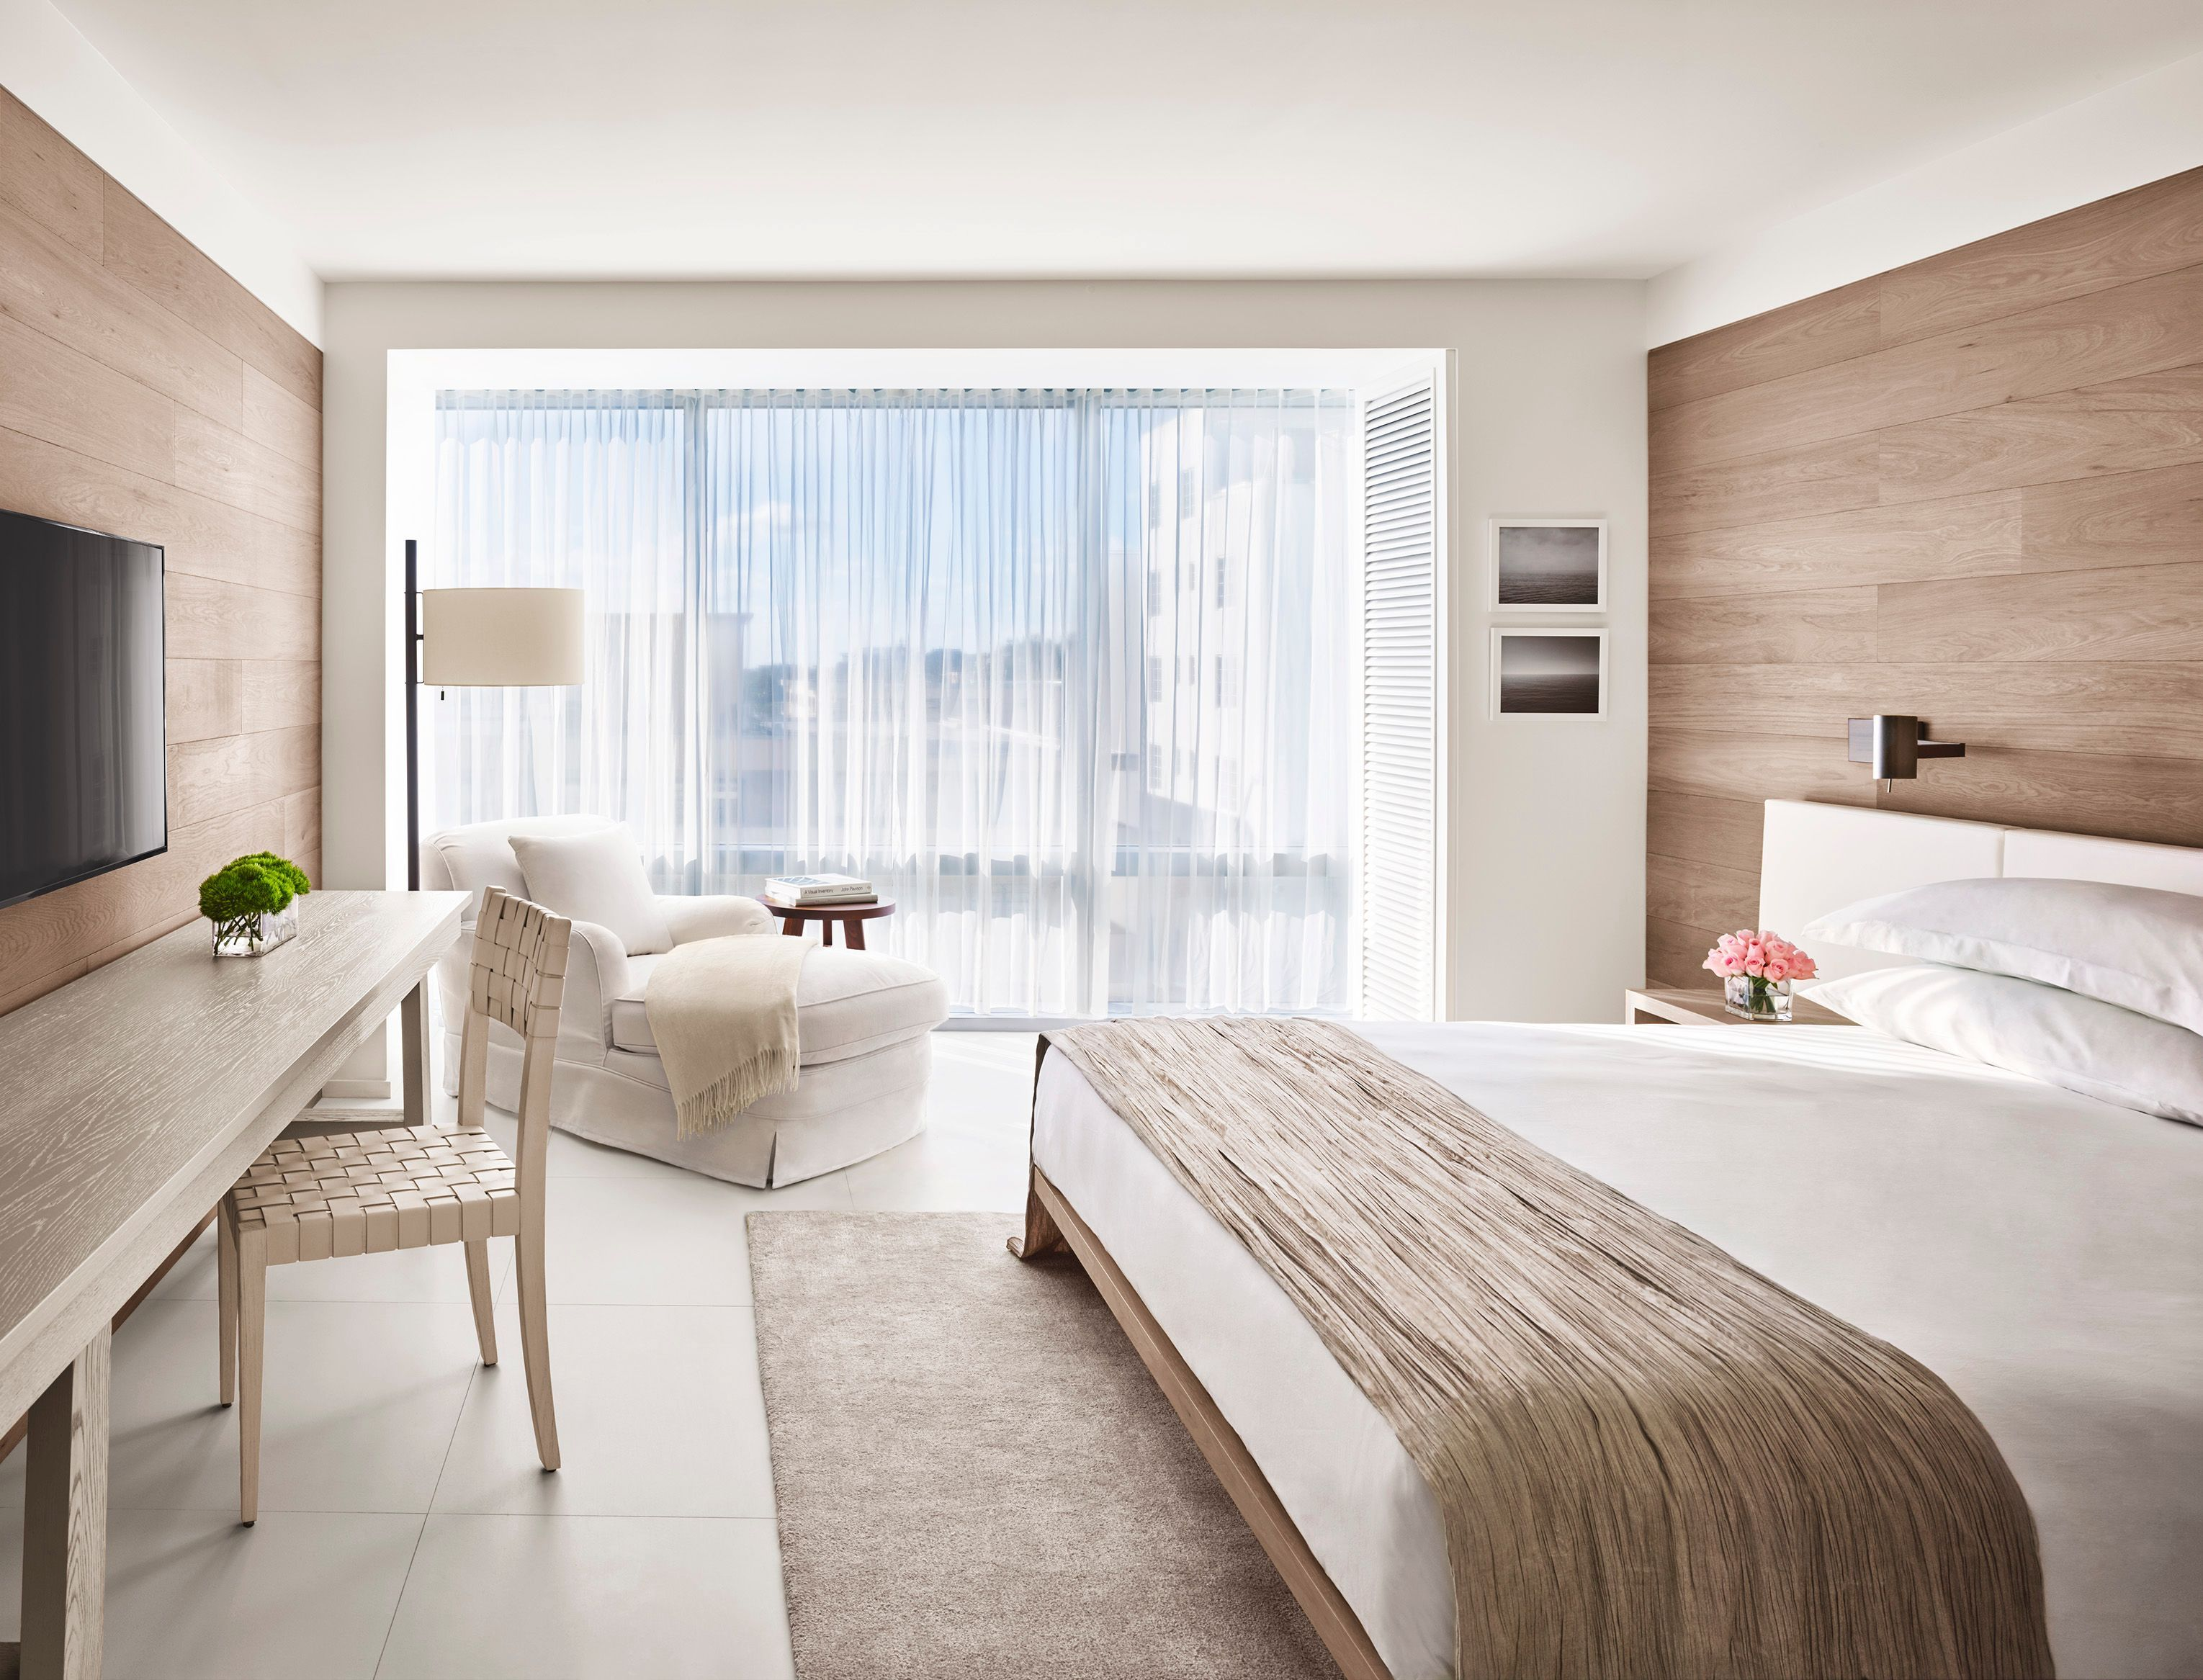 Yabu pushelberg the miami beach edition bedroom luxury for Top luxury boutique hotels